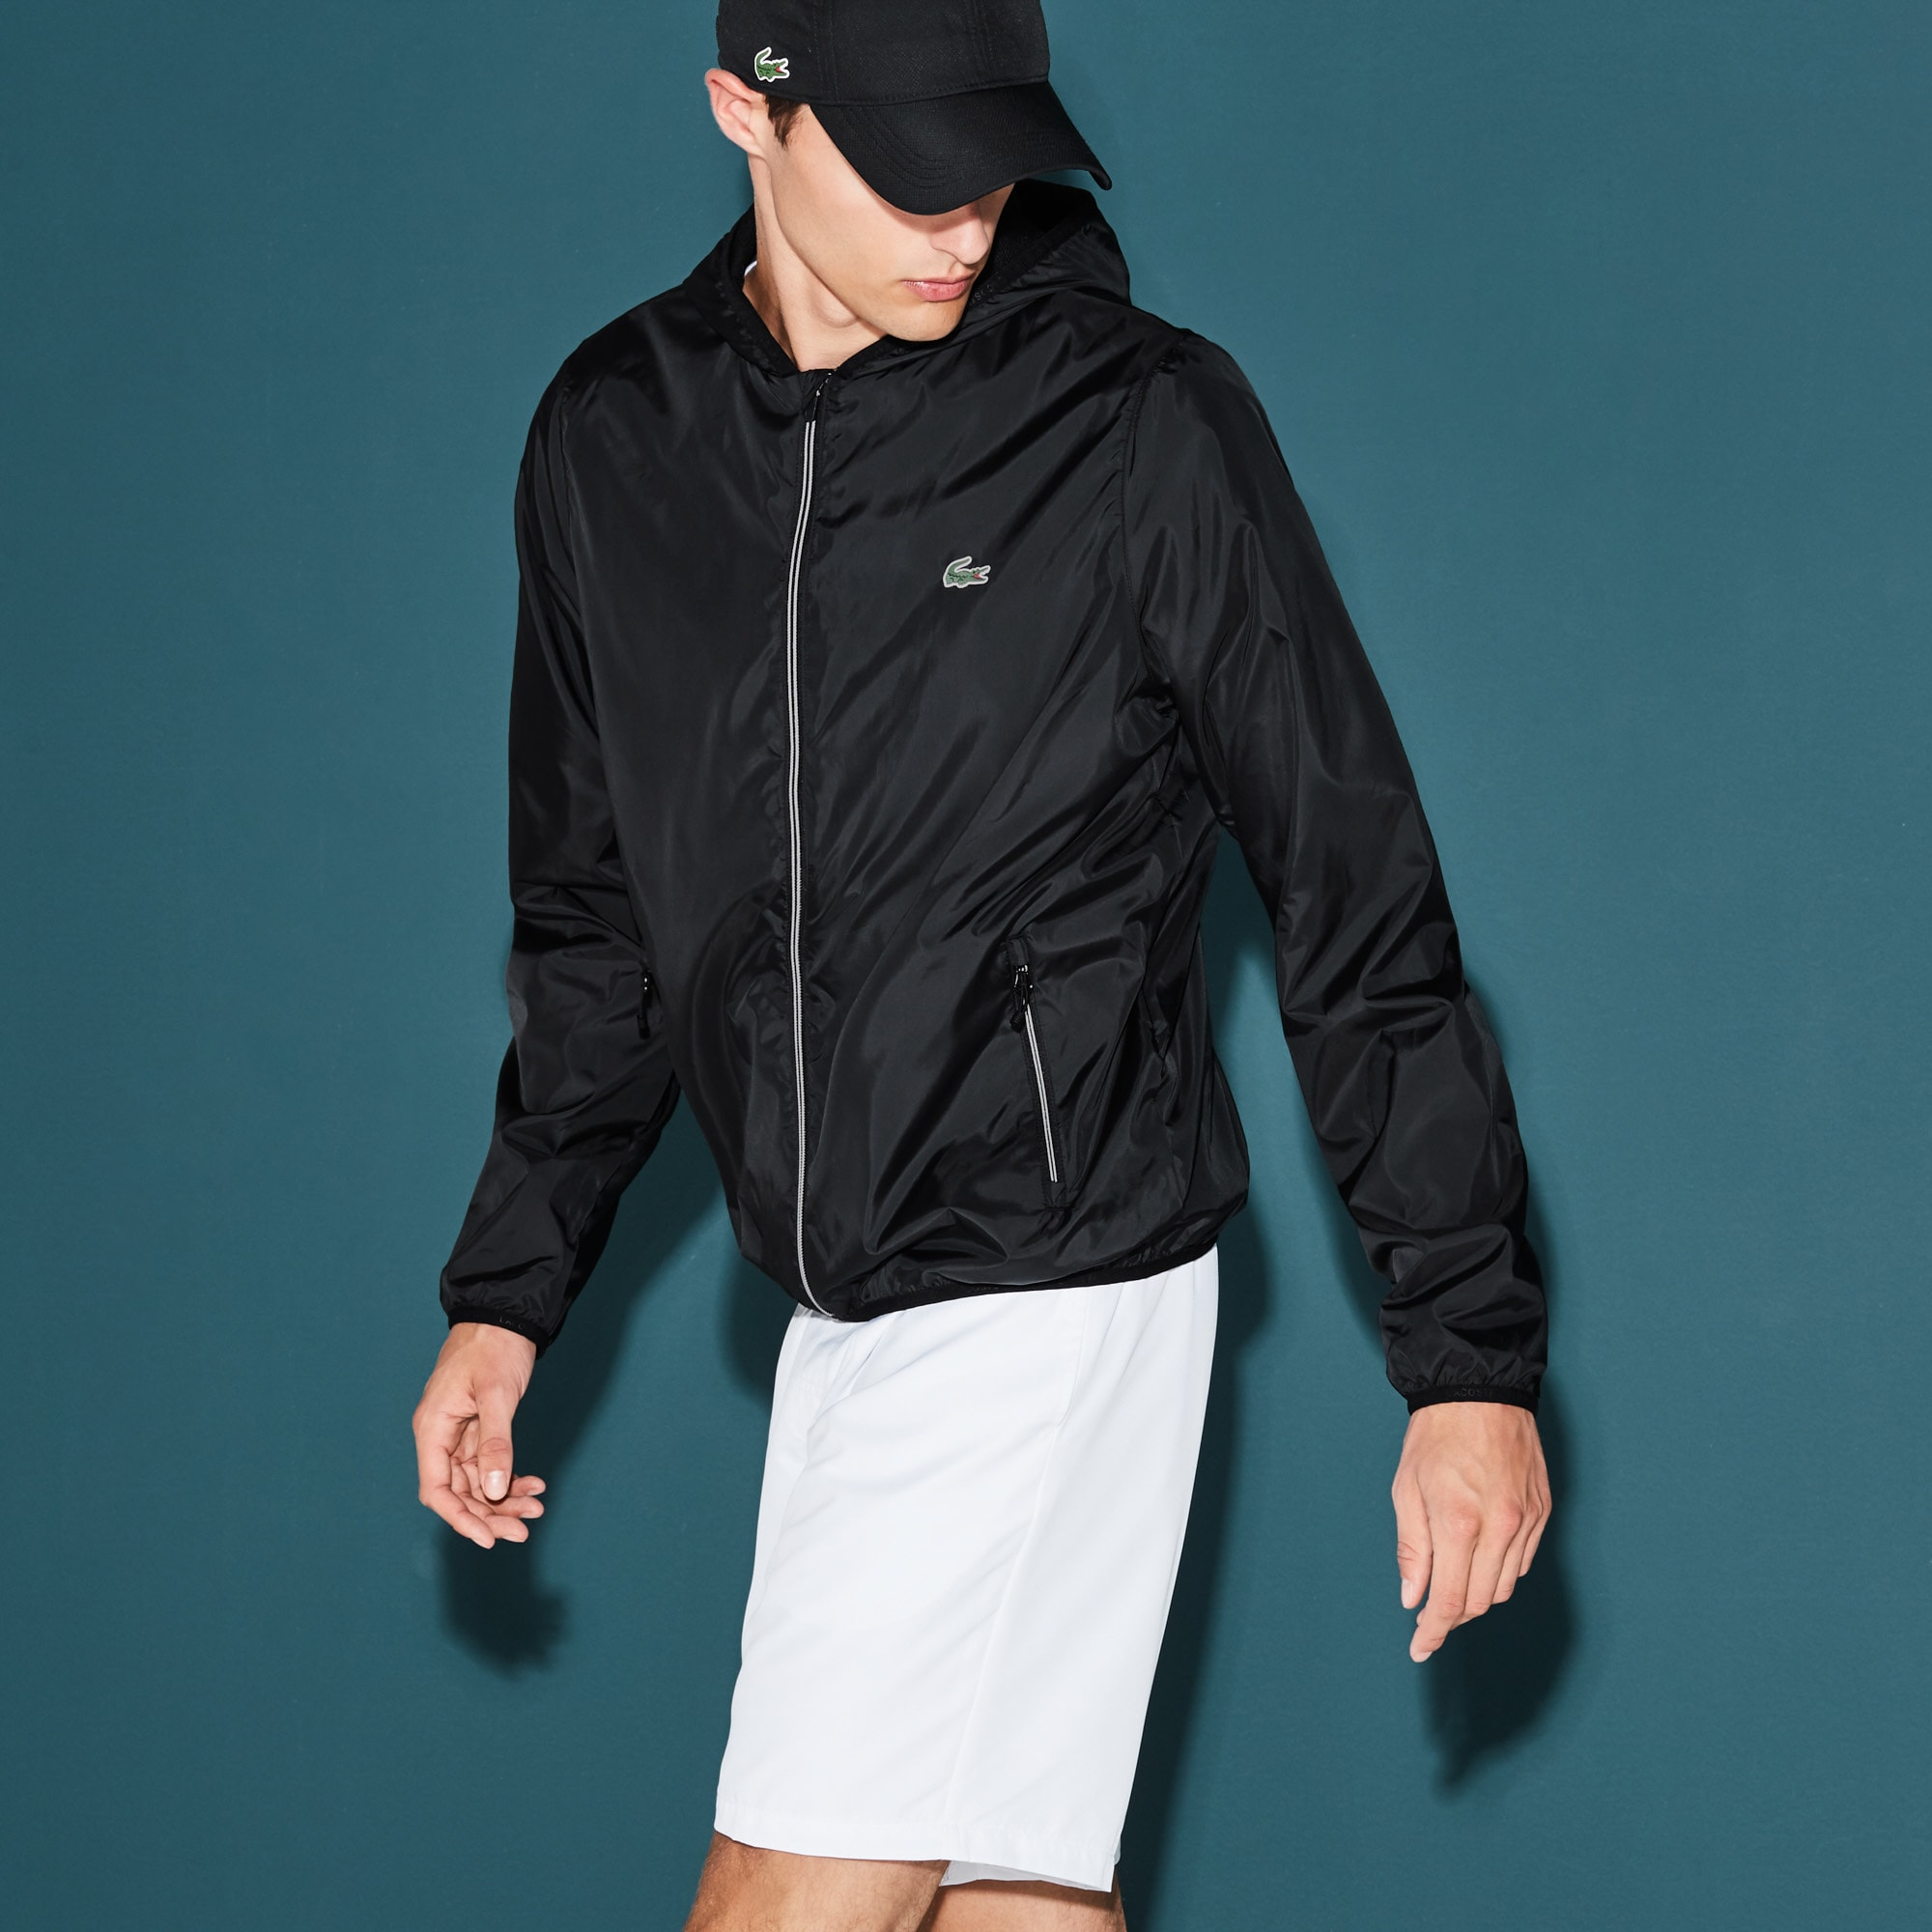 Men's  SPORT Tennis Water-Resistant Hooded Jacket